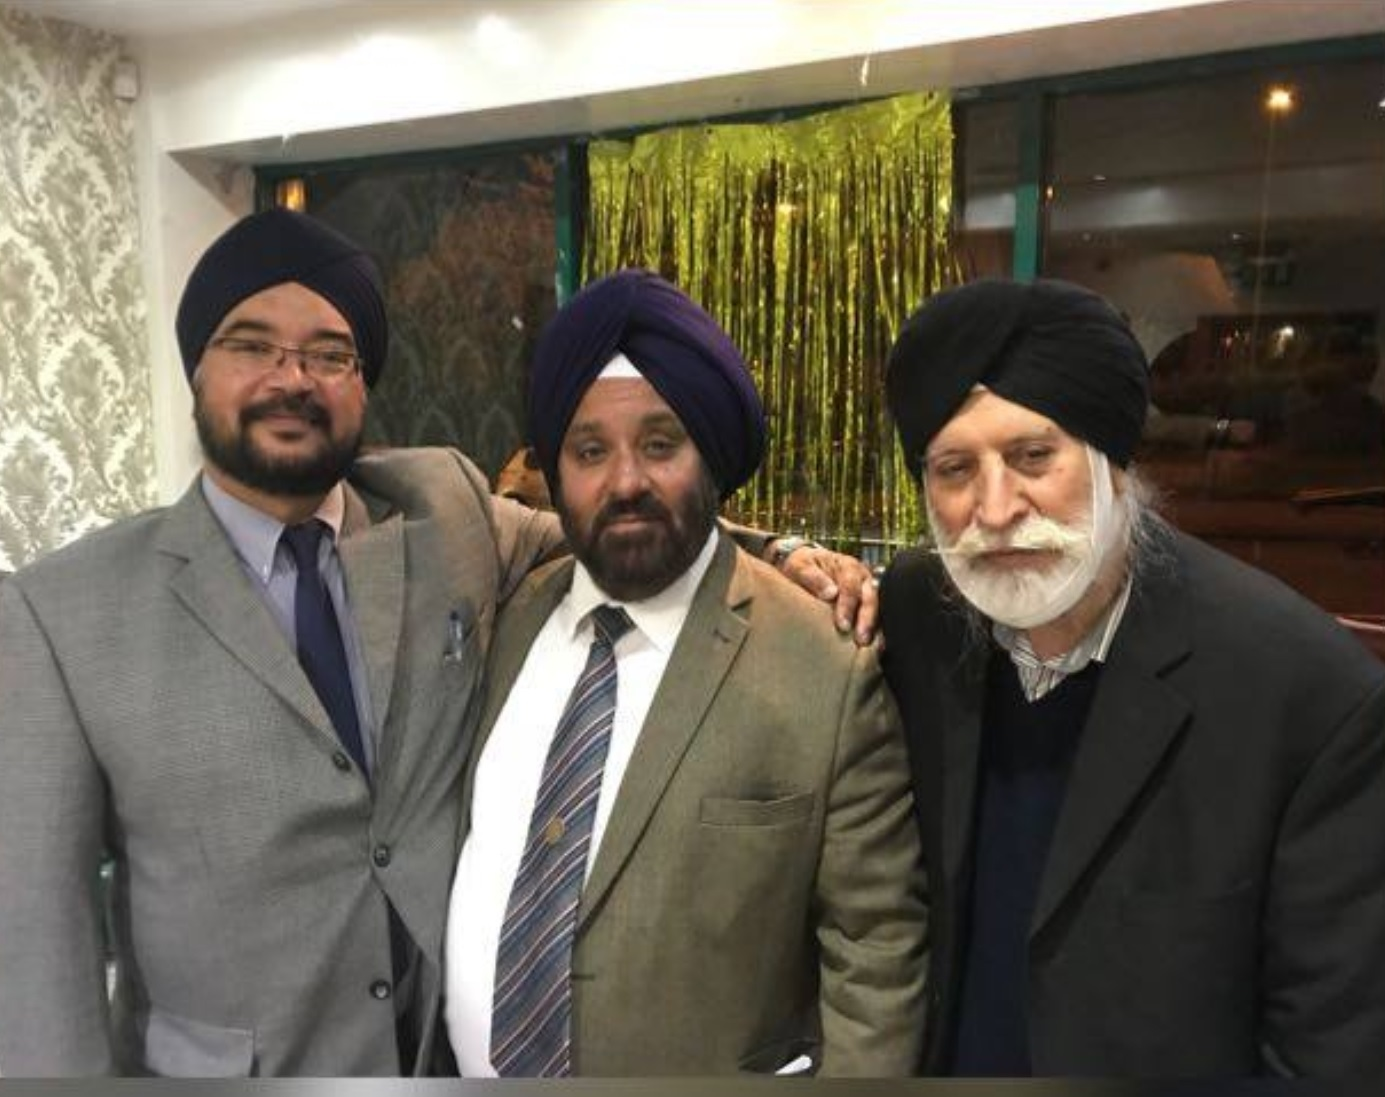 Left named: Treasurer Dalbir Singh Kundi Middle: Nirmal Singh Sekhon MBE FRSA Right: Hardev Singh Sidhu General Secretary.